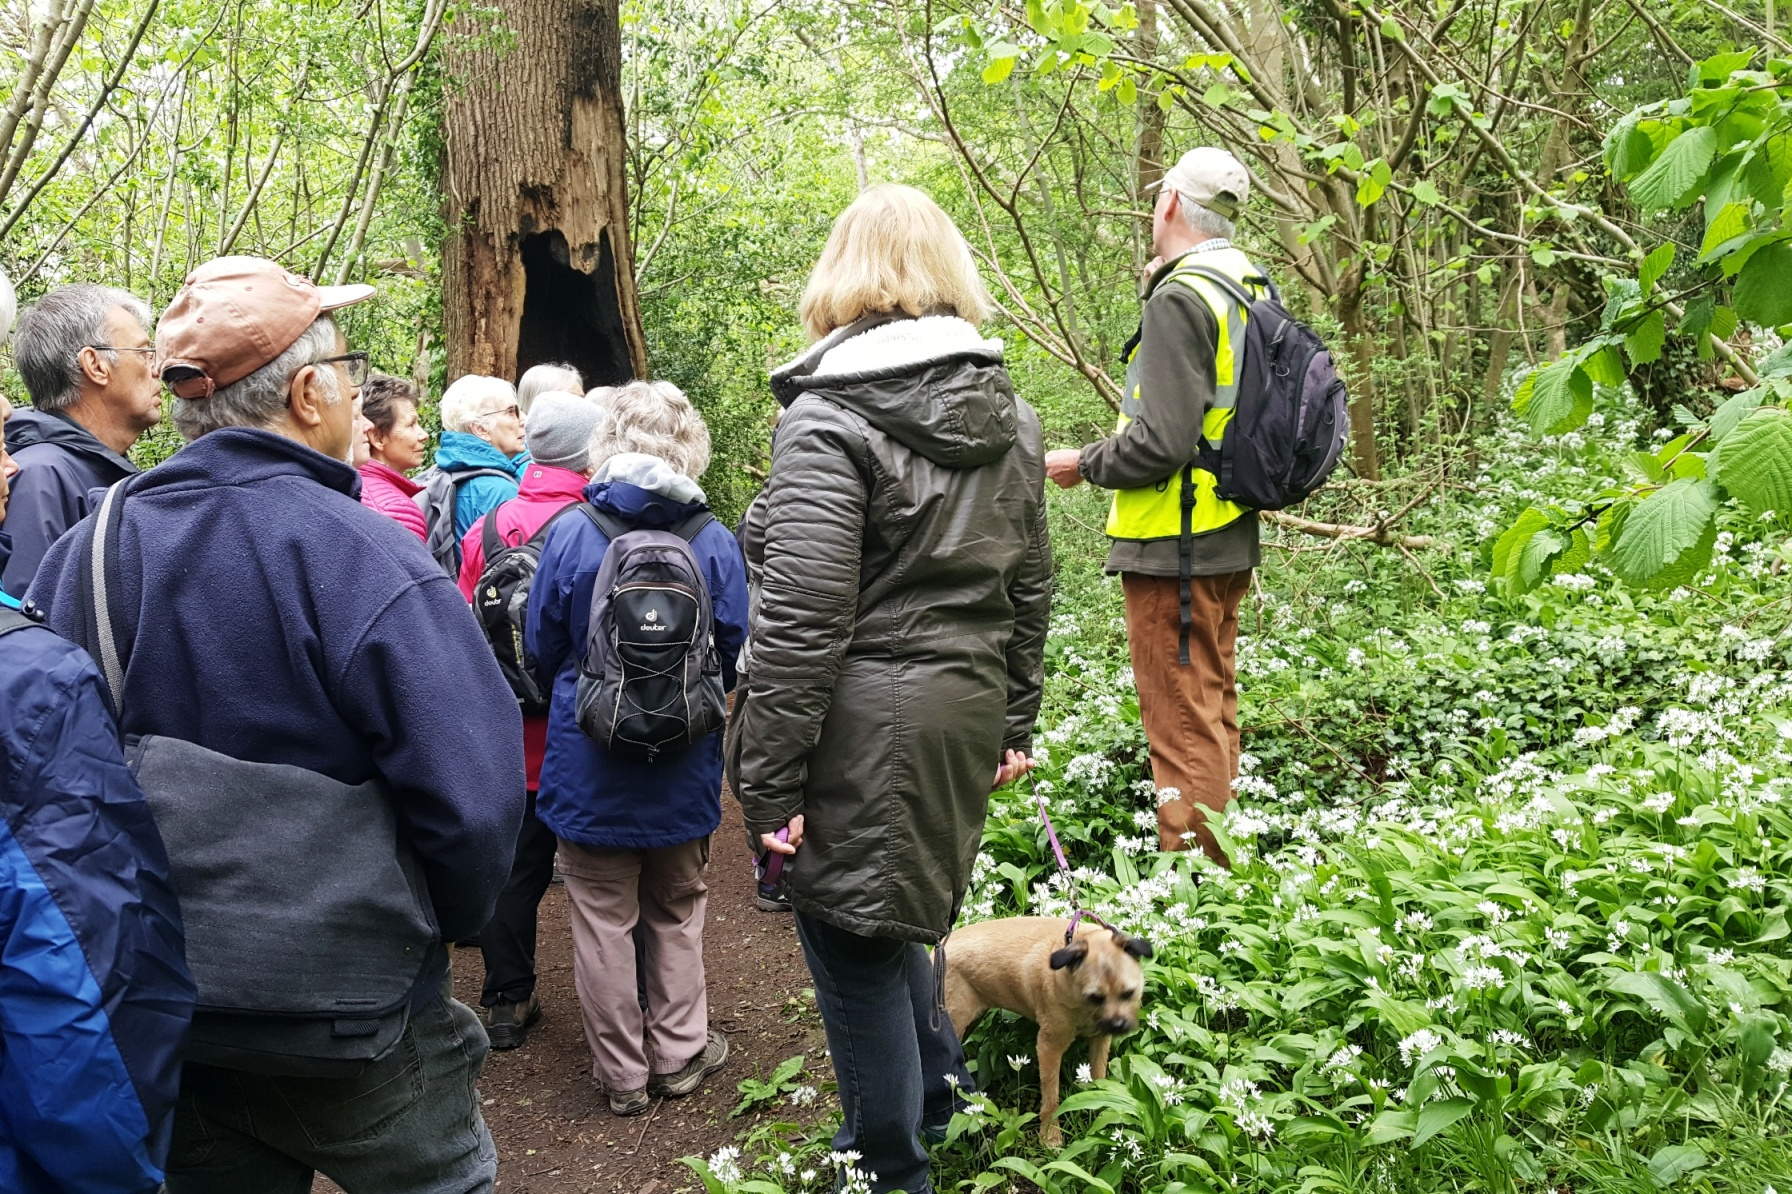 Guided tour of a nature reserve